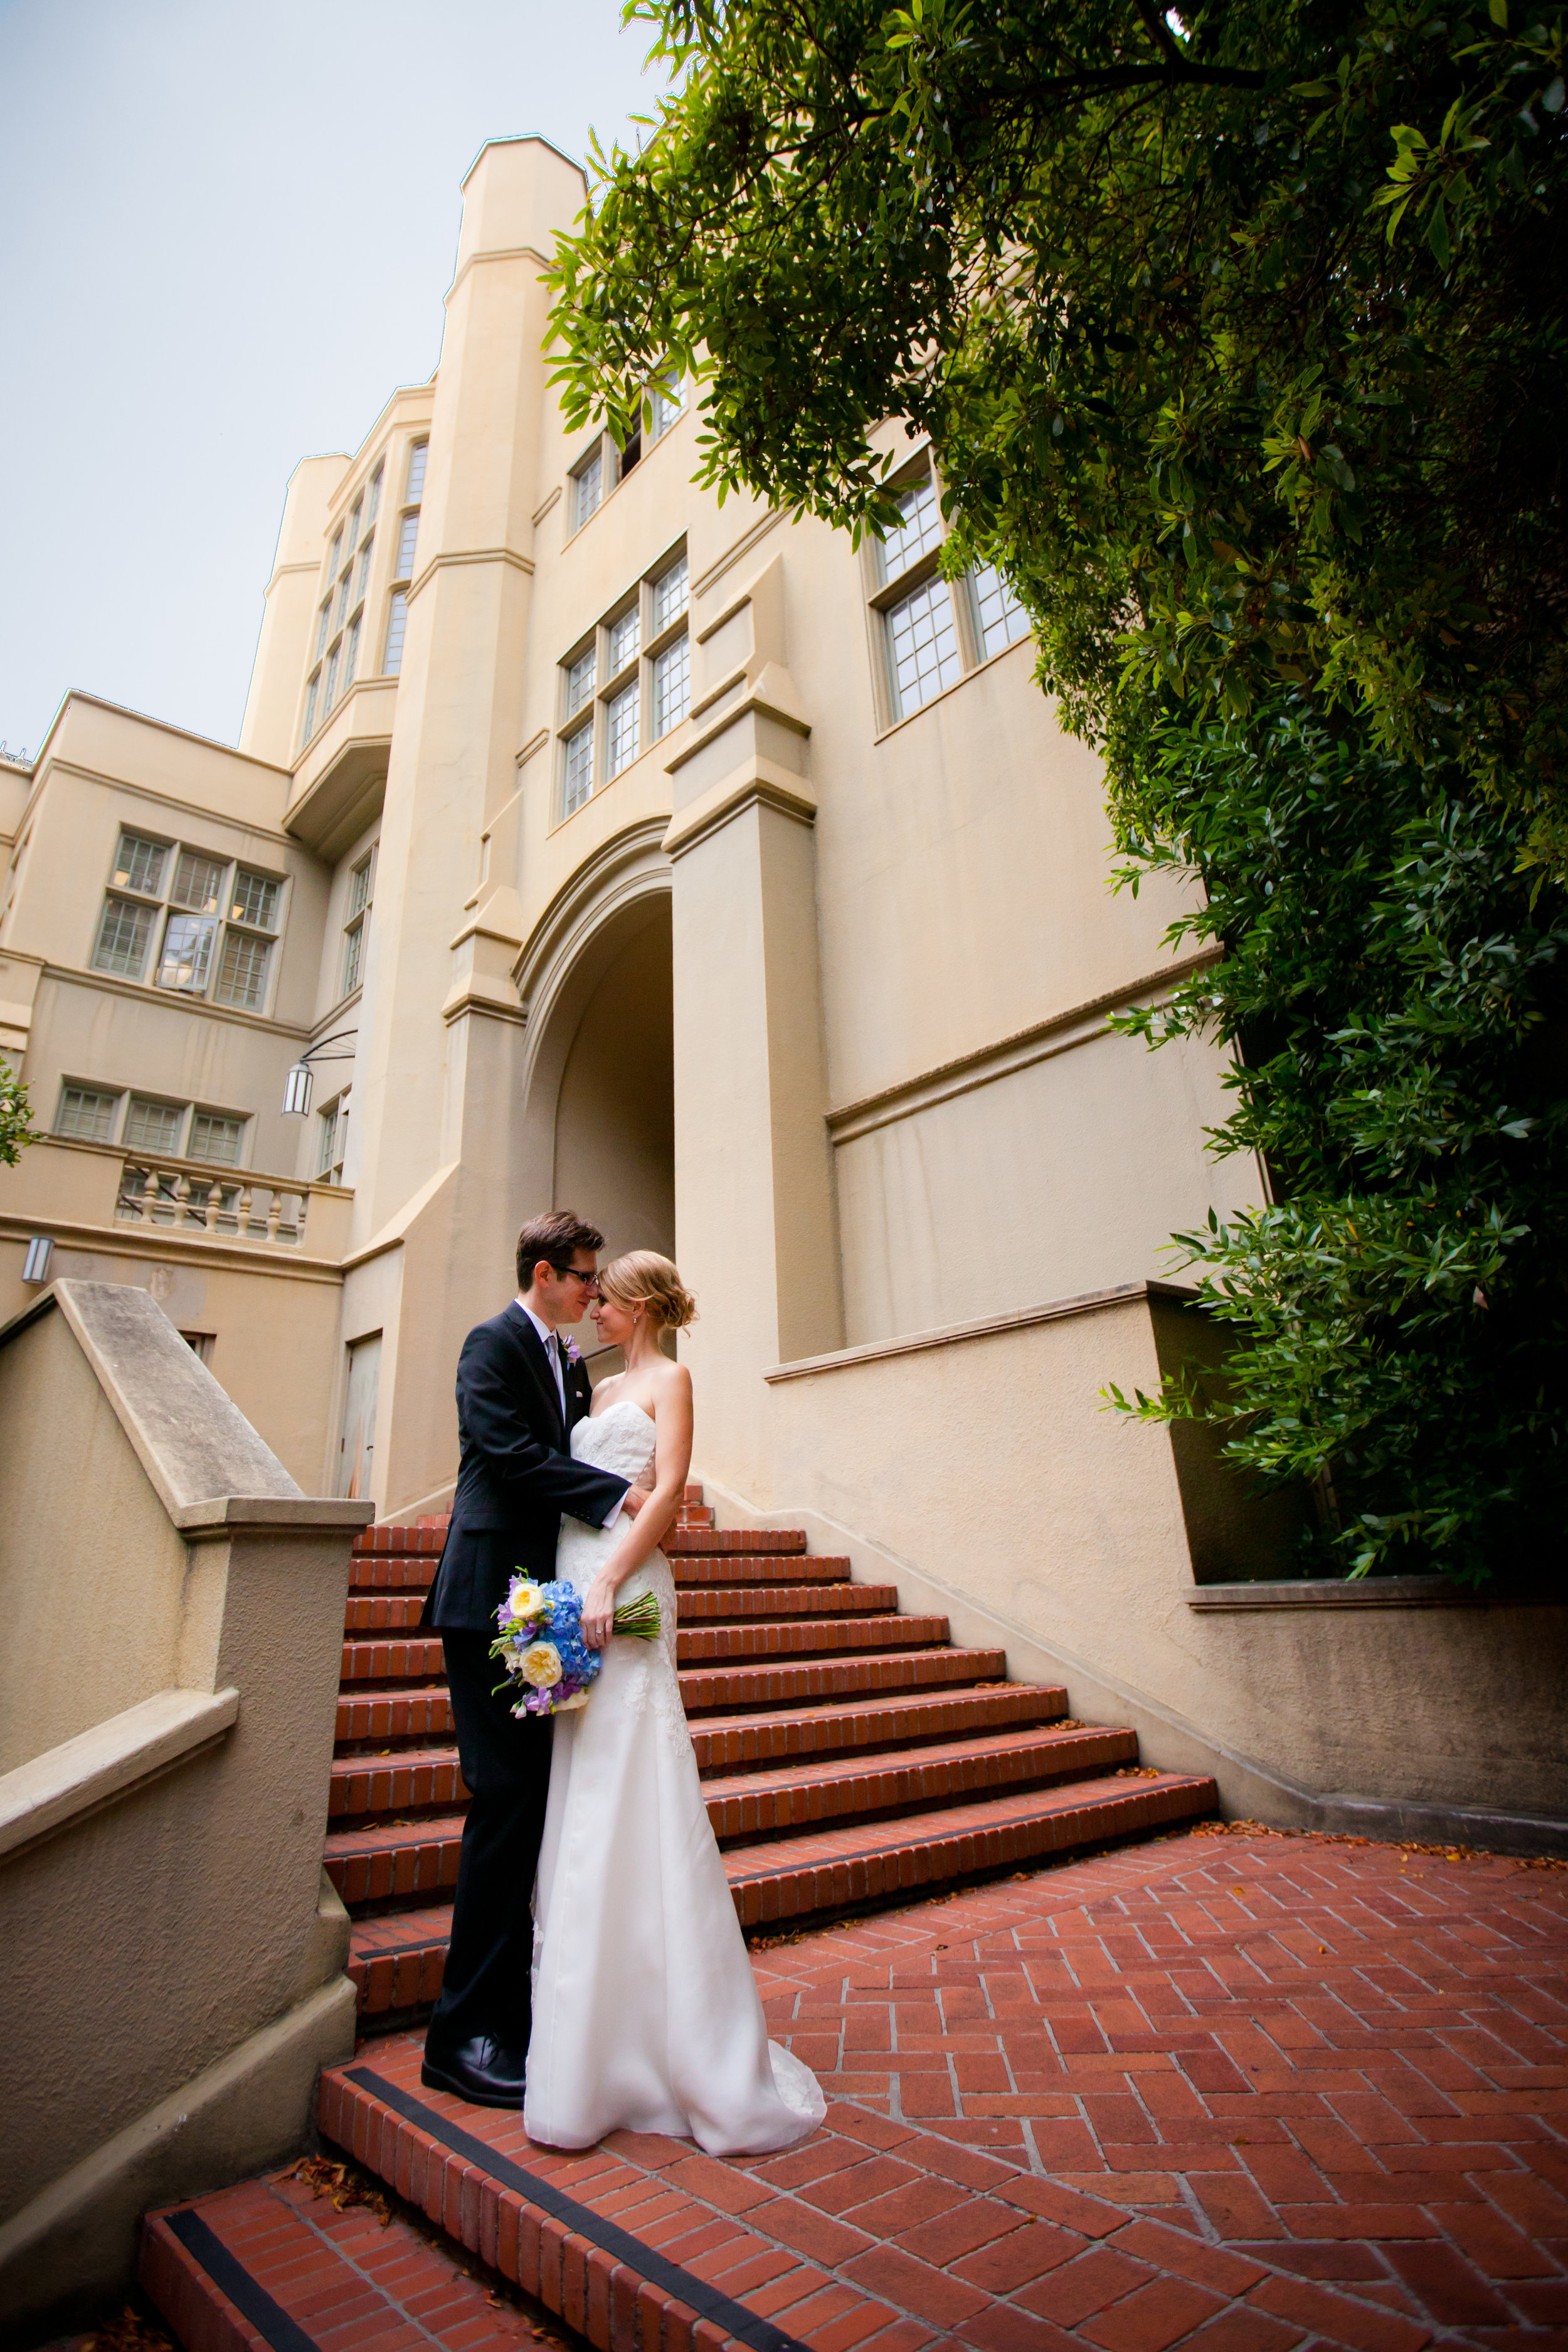 Moira and Rob Kolasinski , July 2011. Dress by Monique Lhullier, Bliss by Erin Filliater @ Wedded Bliss Images.jpg